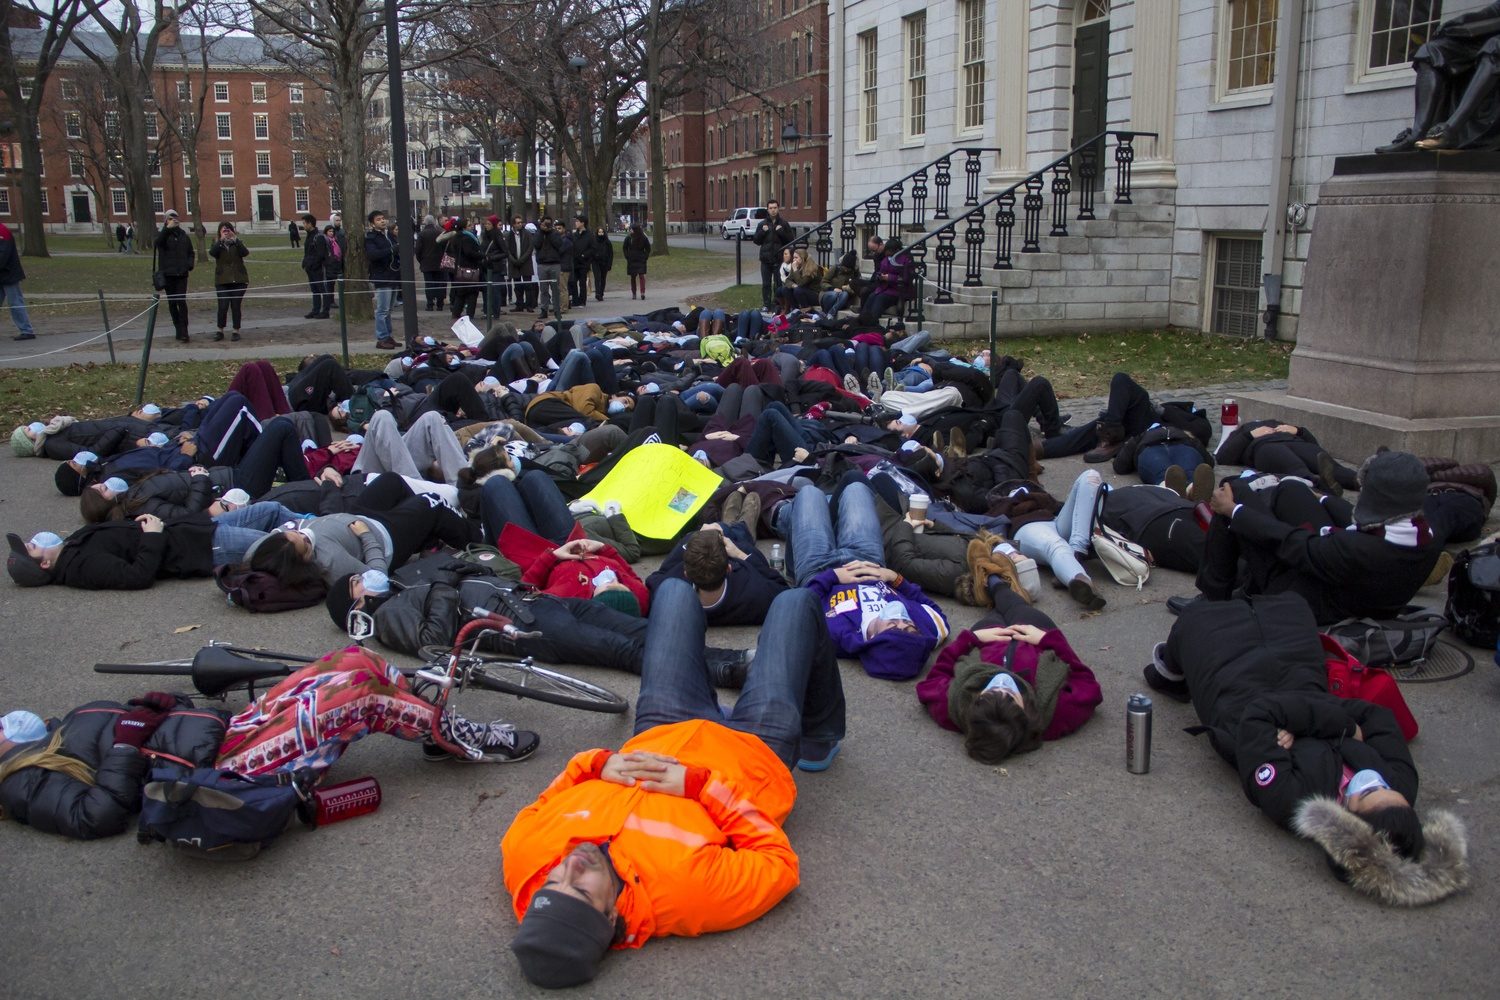 During the Black Lives Matter protests in early 2015, Harvard protesters lied down for 4.5 minutes in front of the John Harvard statue to honor Michael Brown.